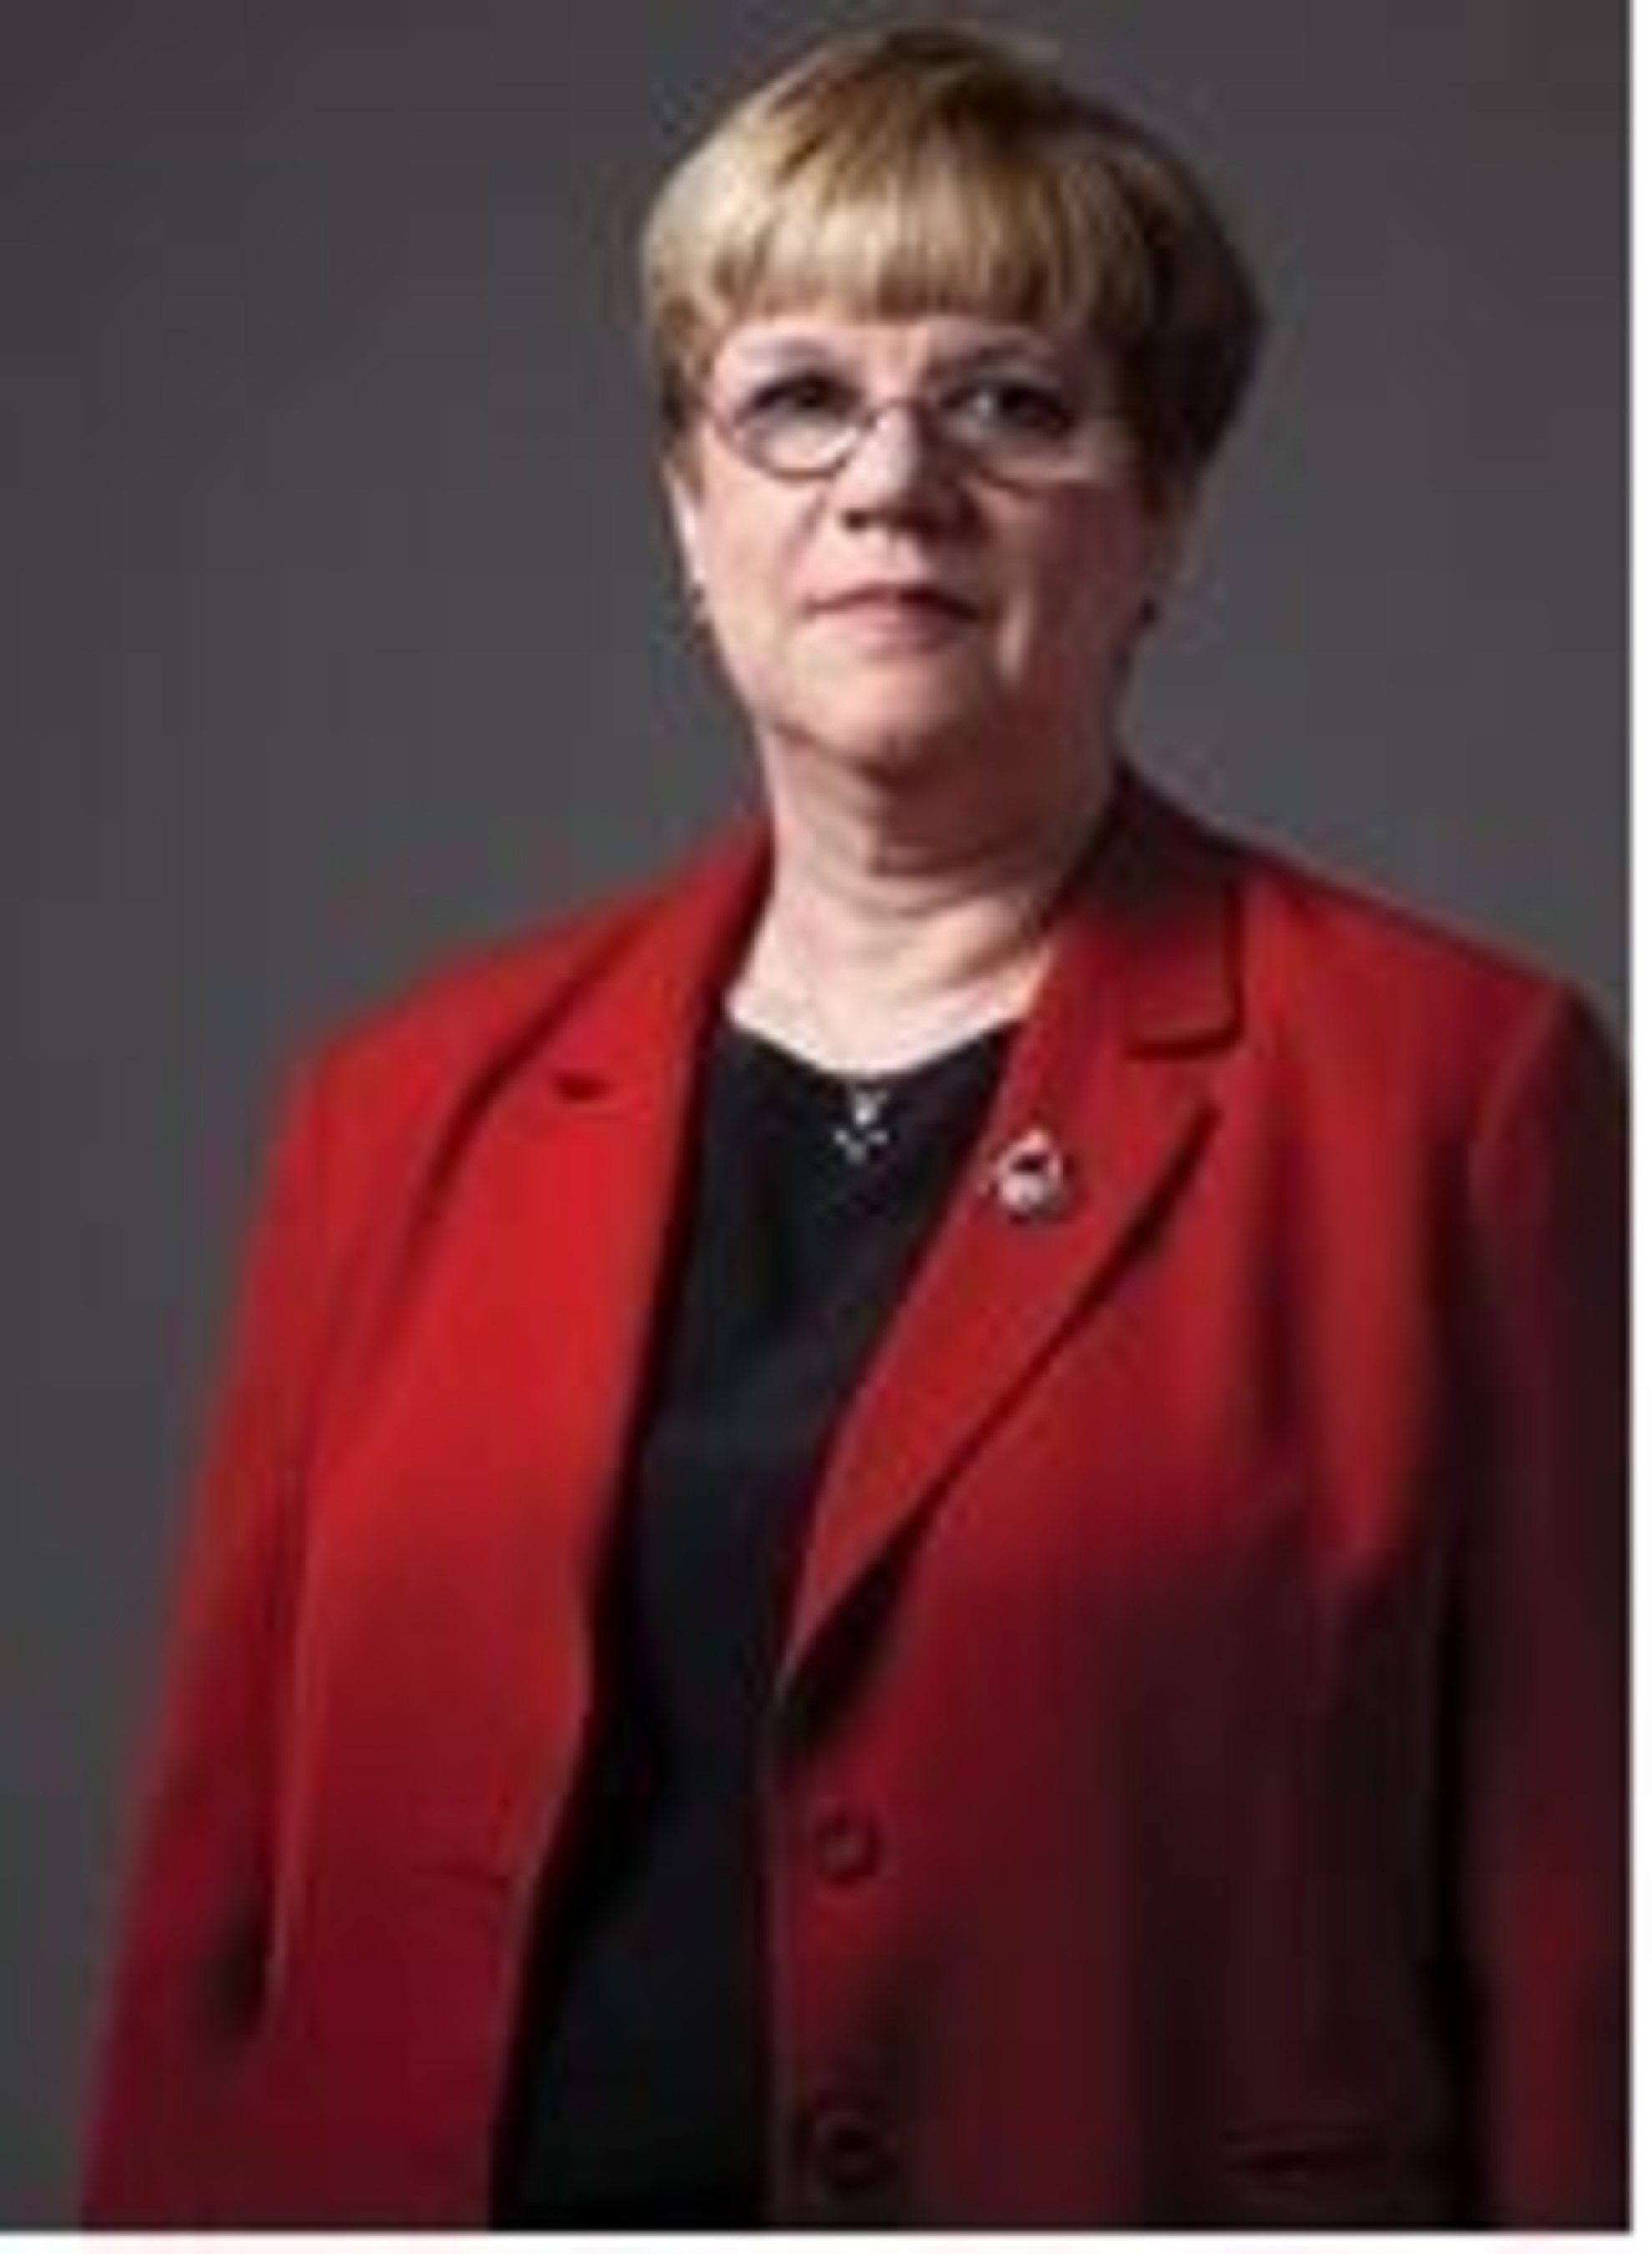 Dr. Judith D. McLeod, R.N., BSN, MSN, DNP, CPNP, is recognized by Continental Who's Who as a